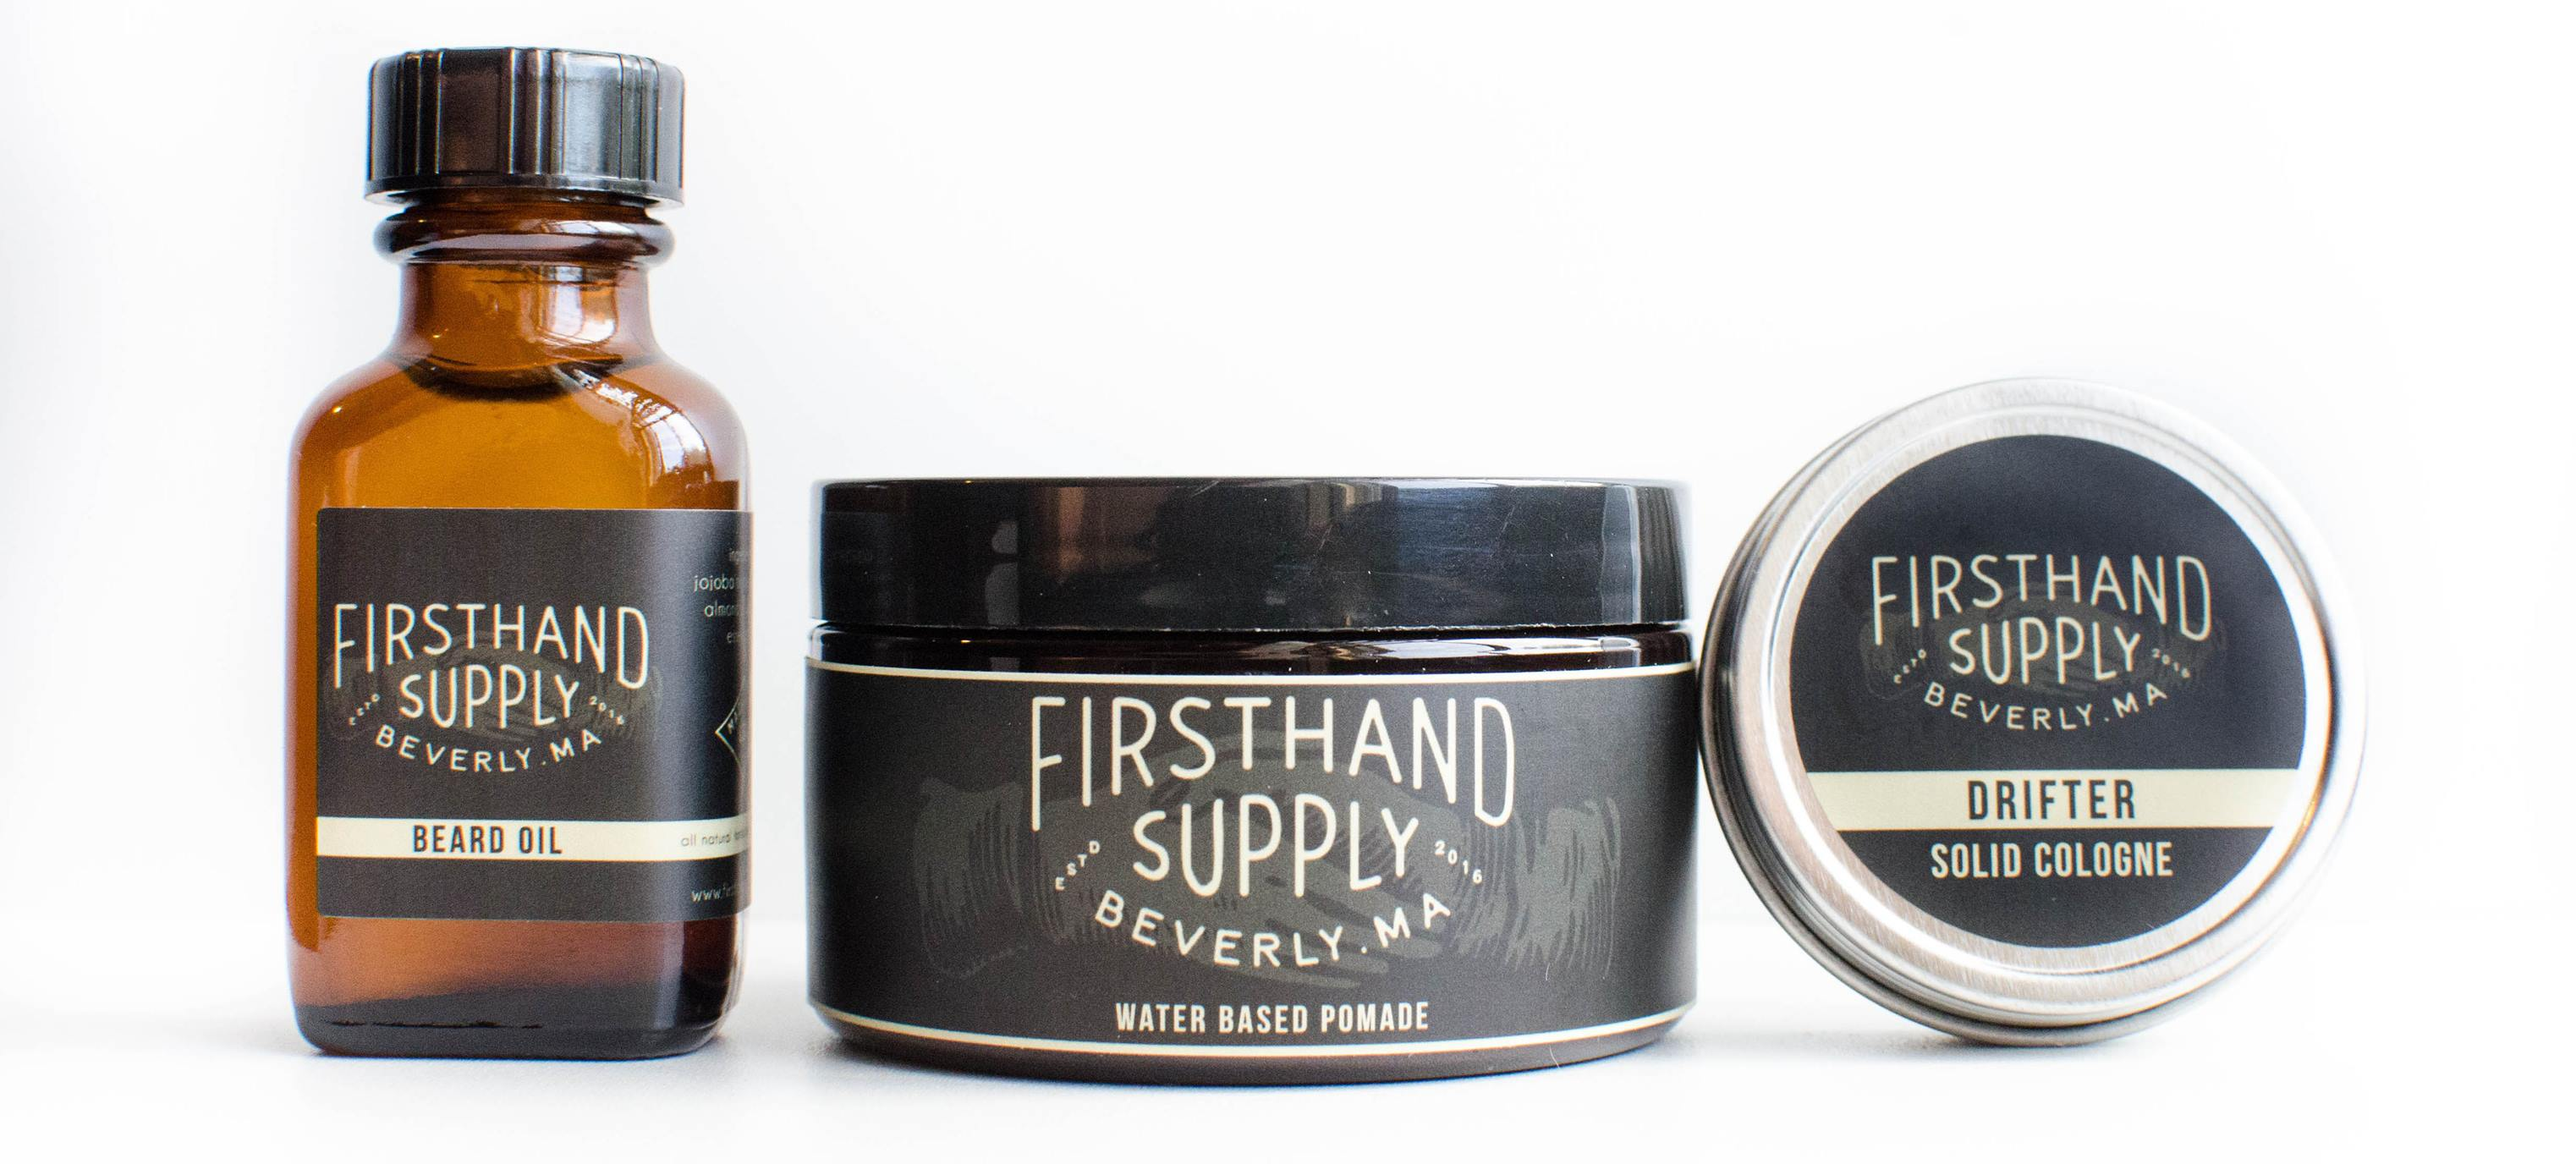 About Firsthand Supply Product